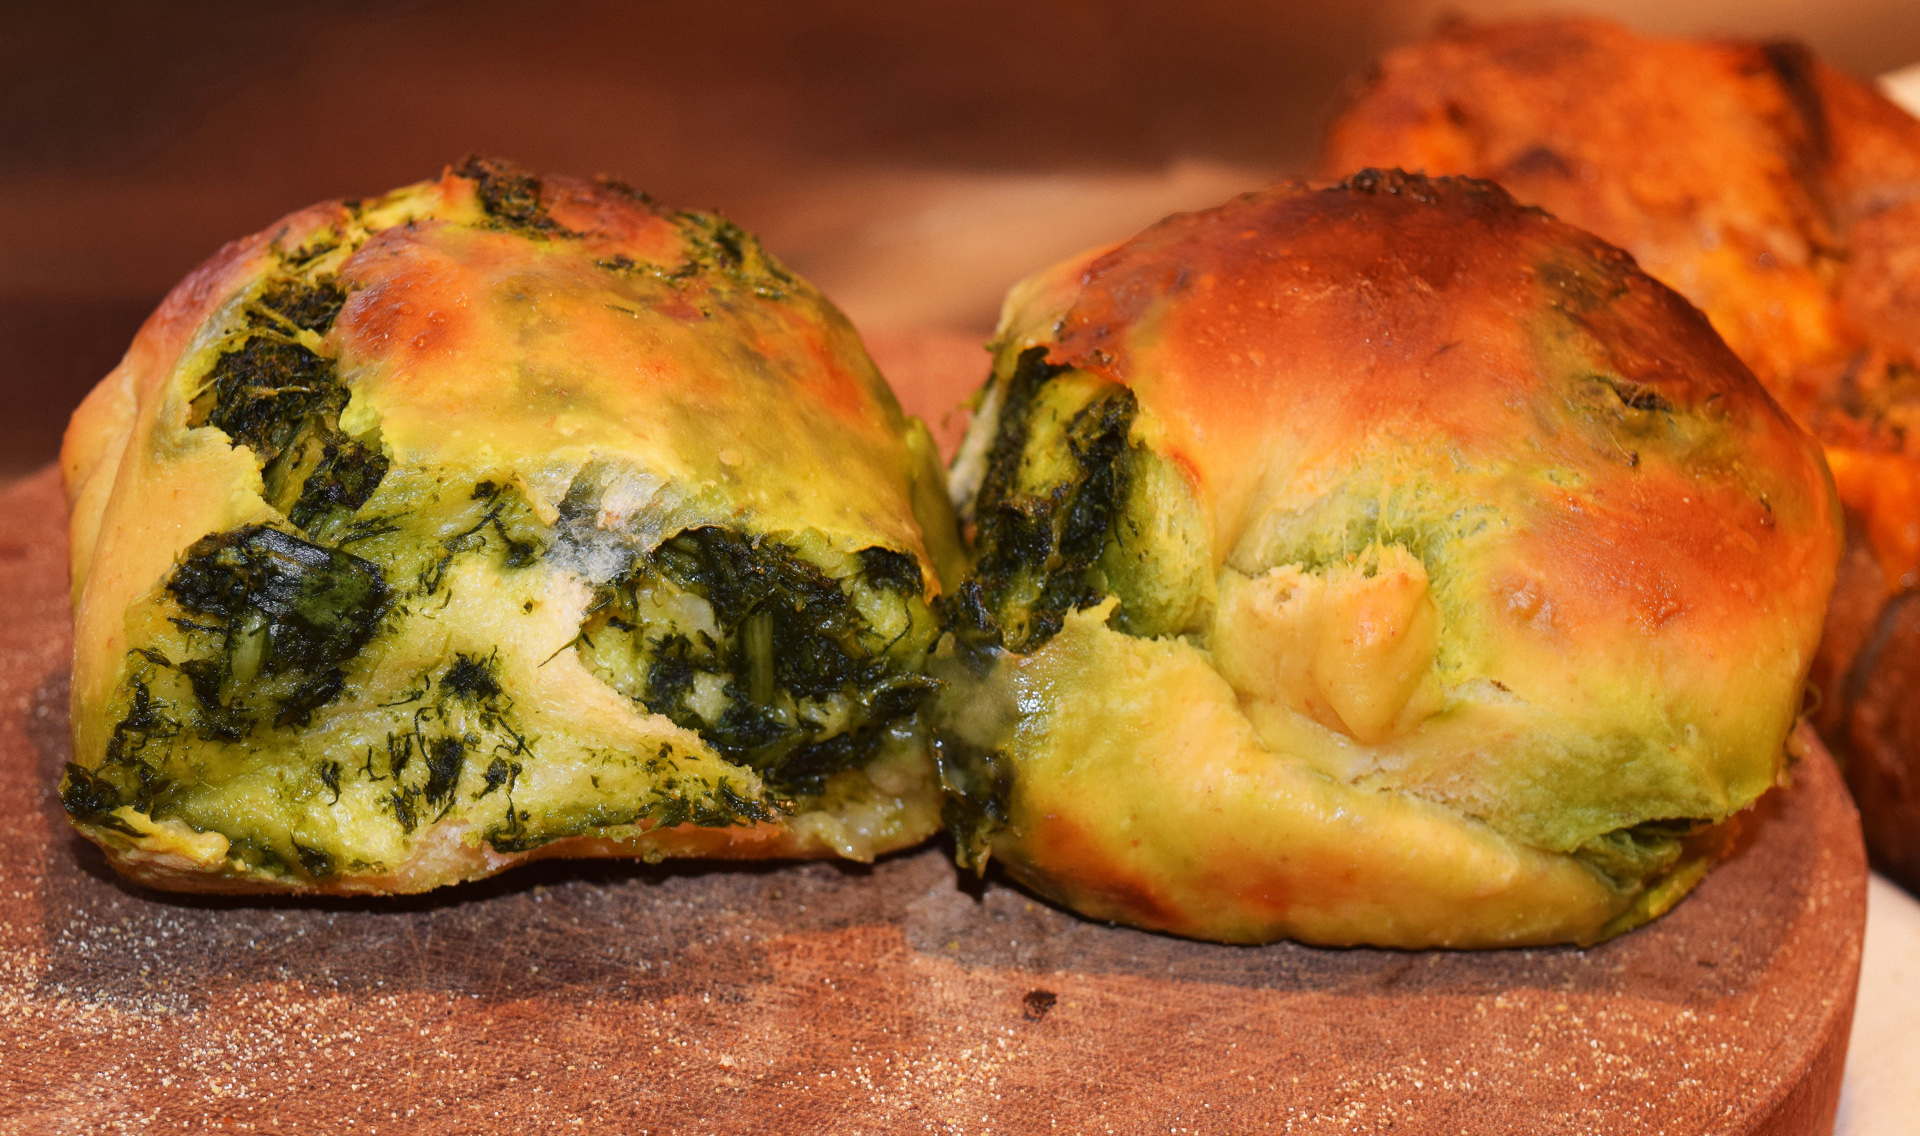 Mayimin likes the flavor of dandelion so she pairs it with fresh dill and swirls it though her rich challah dough.